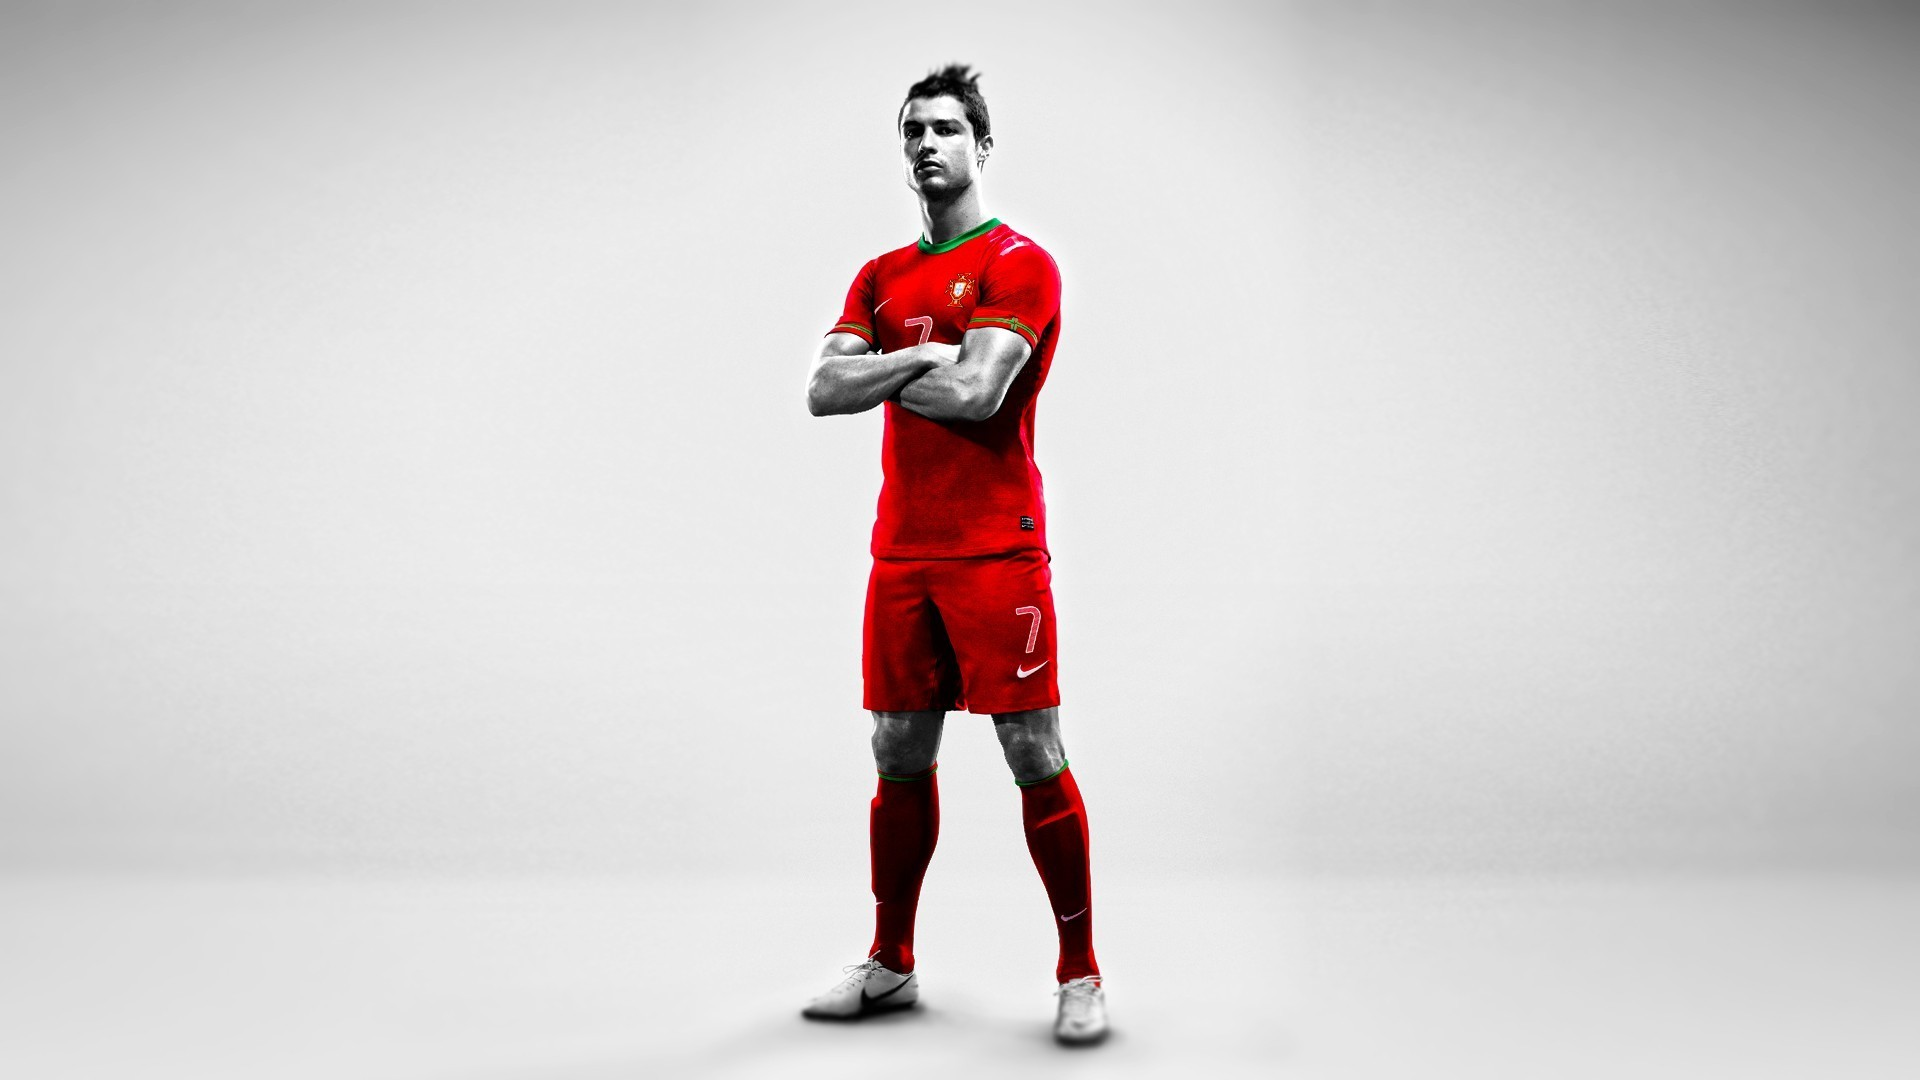 1920x1080 Cristiano Ronaldo Hd Best Photos Of Cr Wallpaper Top In 2017 For Iphone